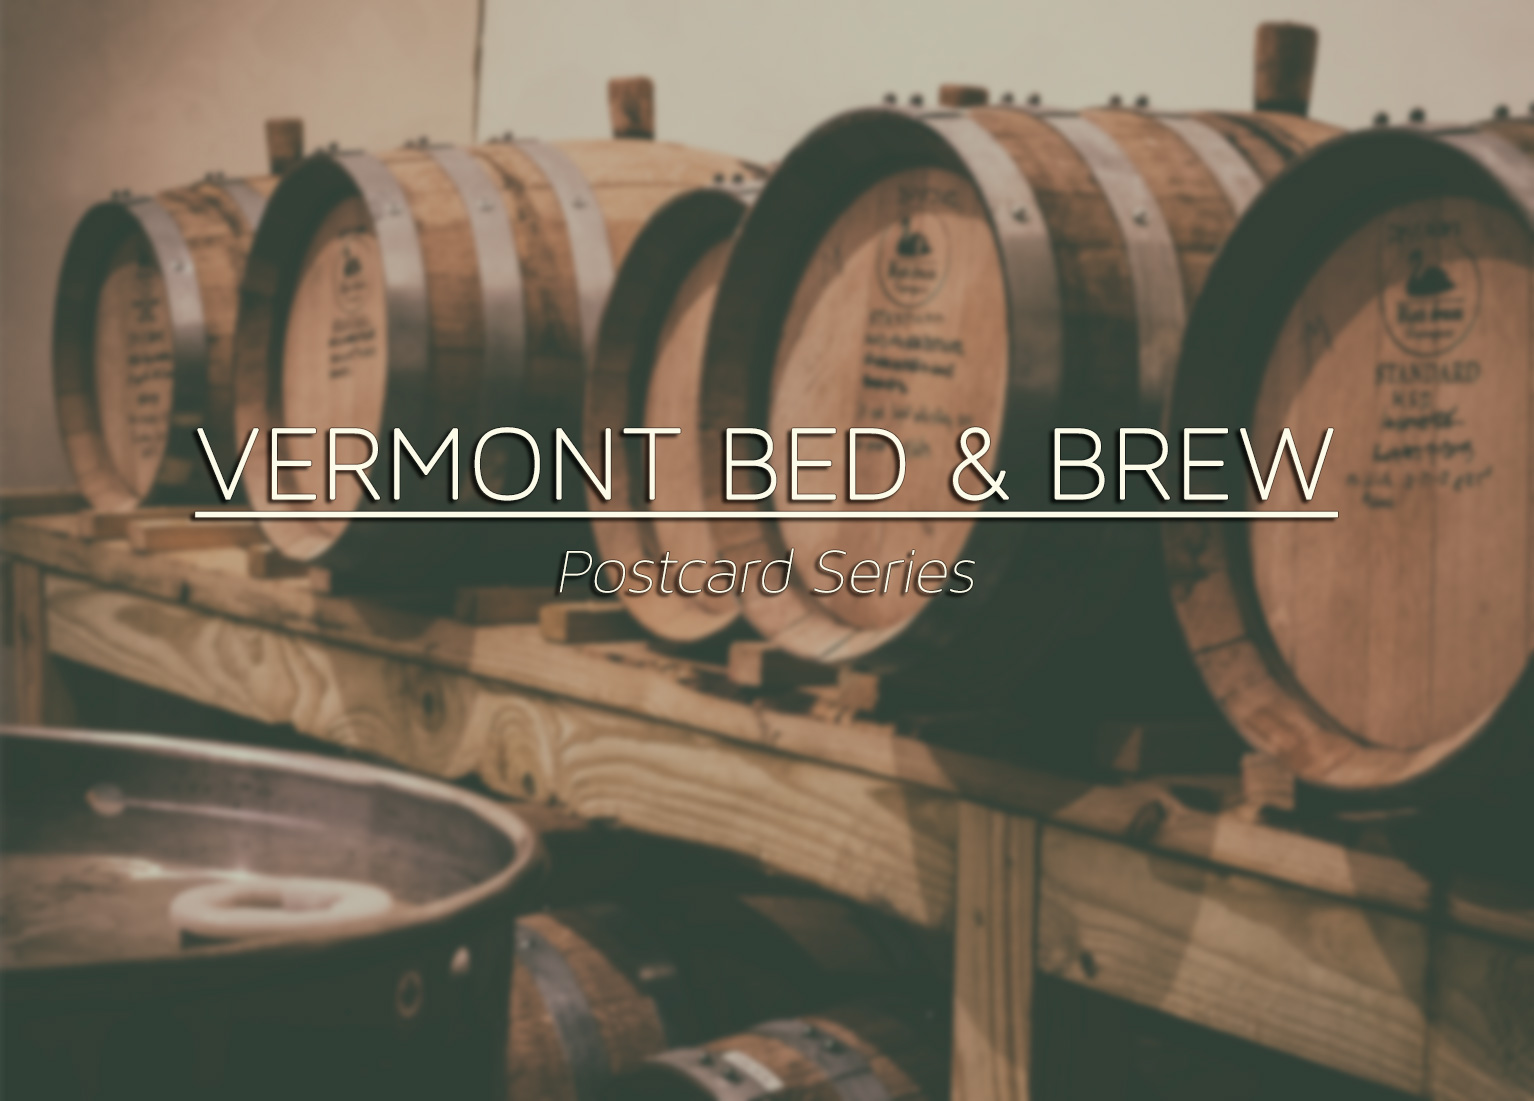 000_0886---As-Home-Page-Cover-For-VT-Bed-and-Brew-Tour-VIII.jpg